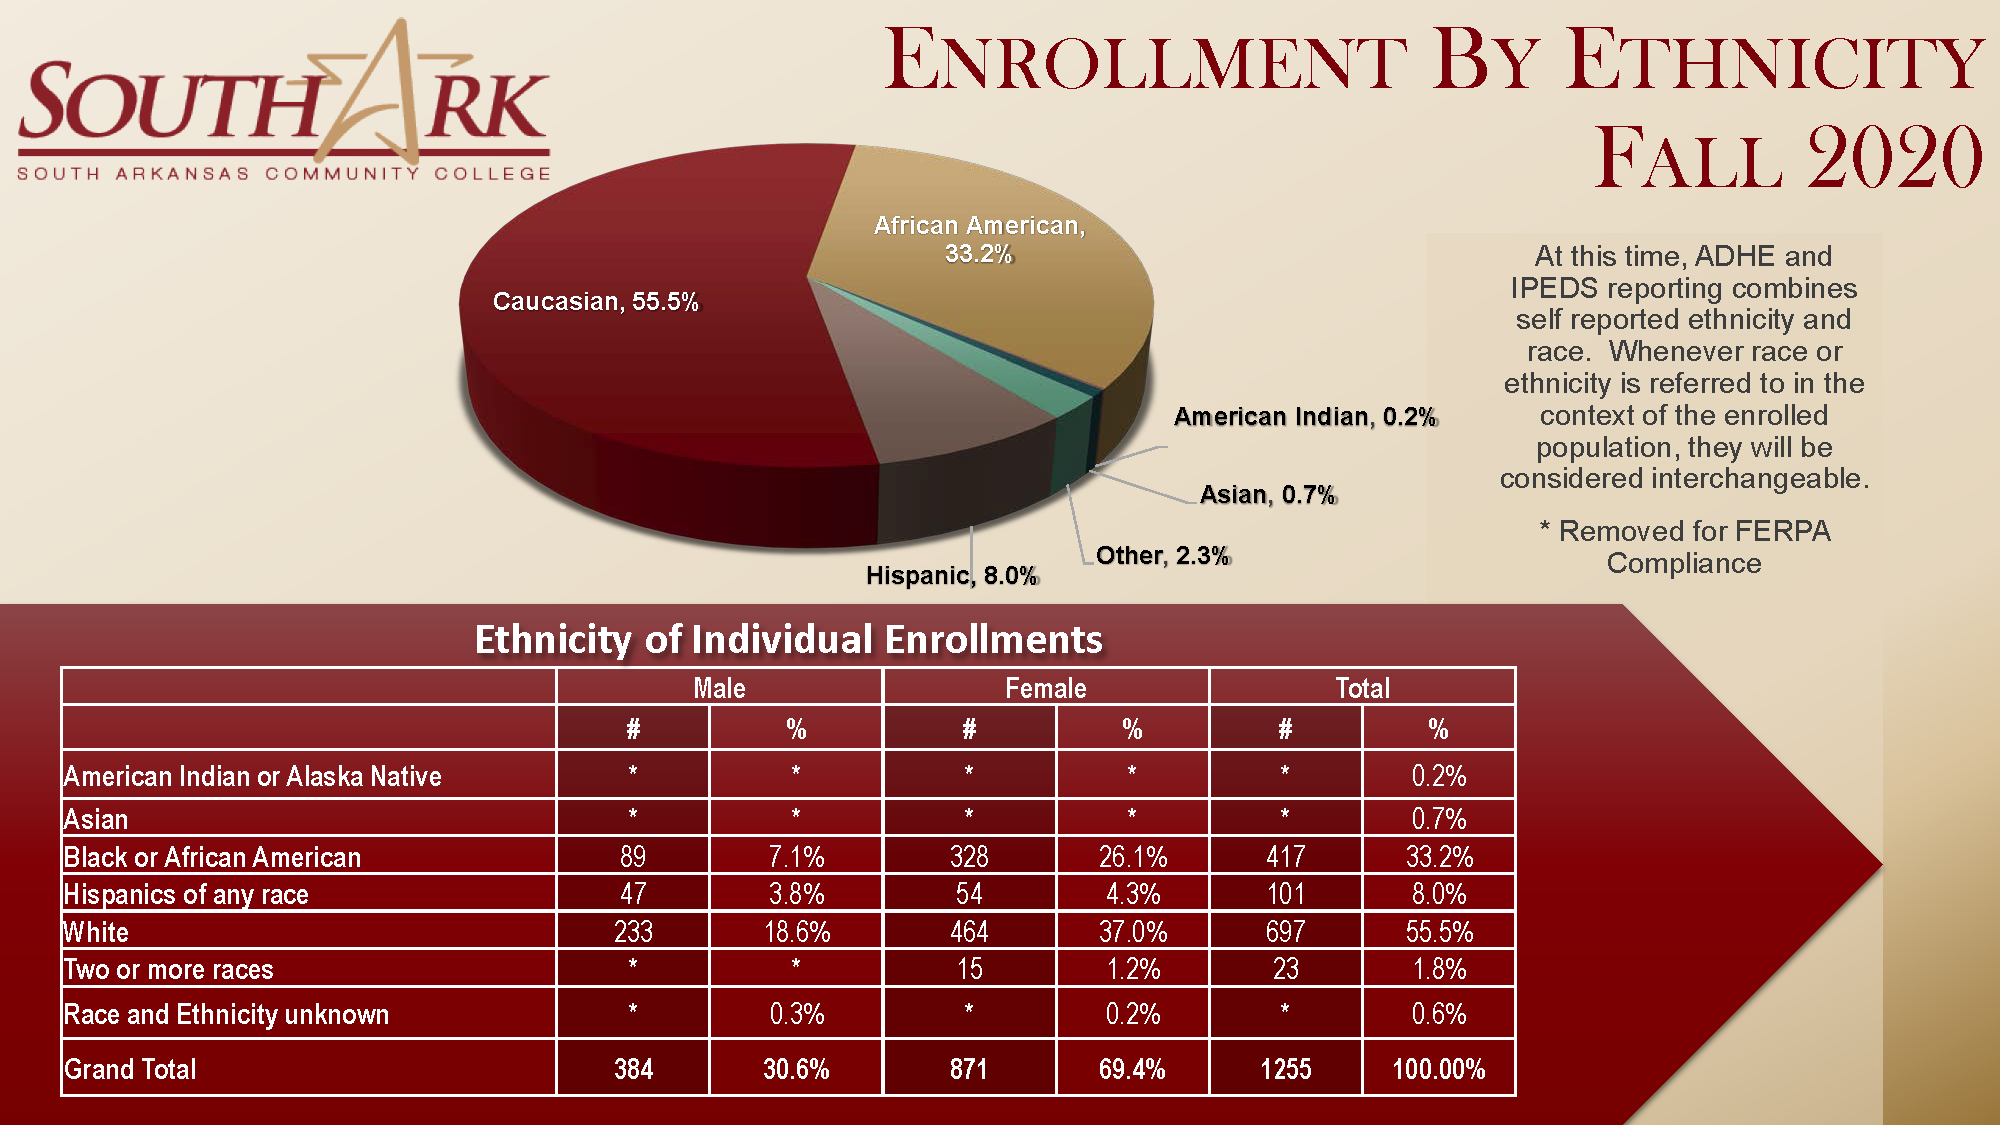 Enrollment by Ethnicity Fall 2020